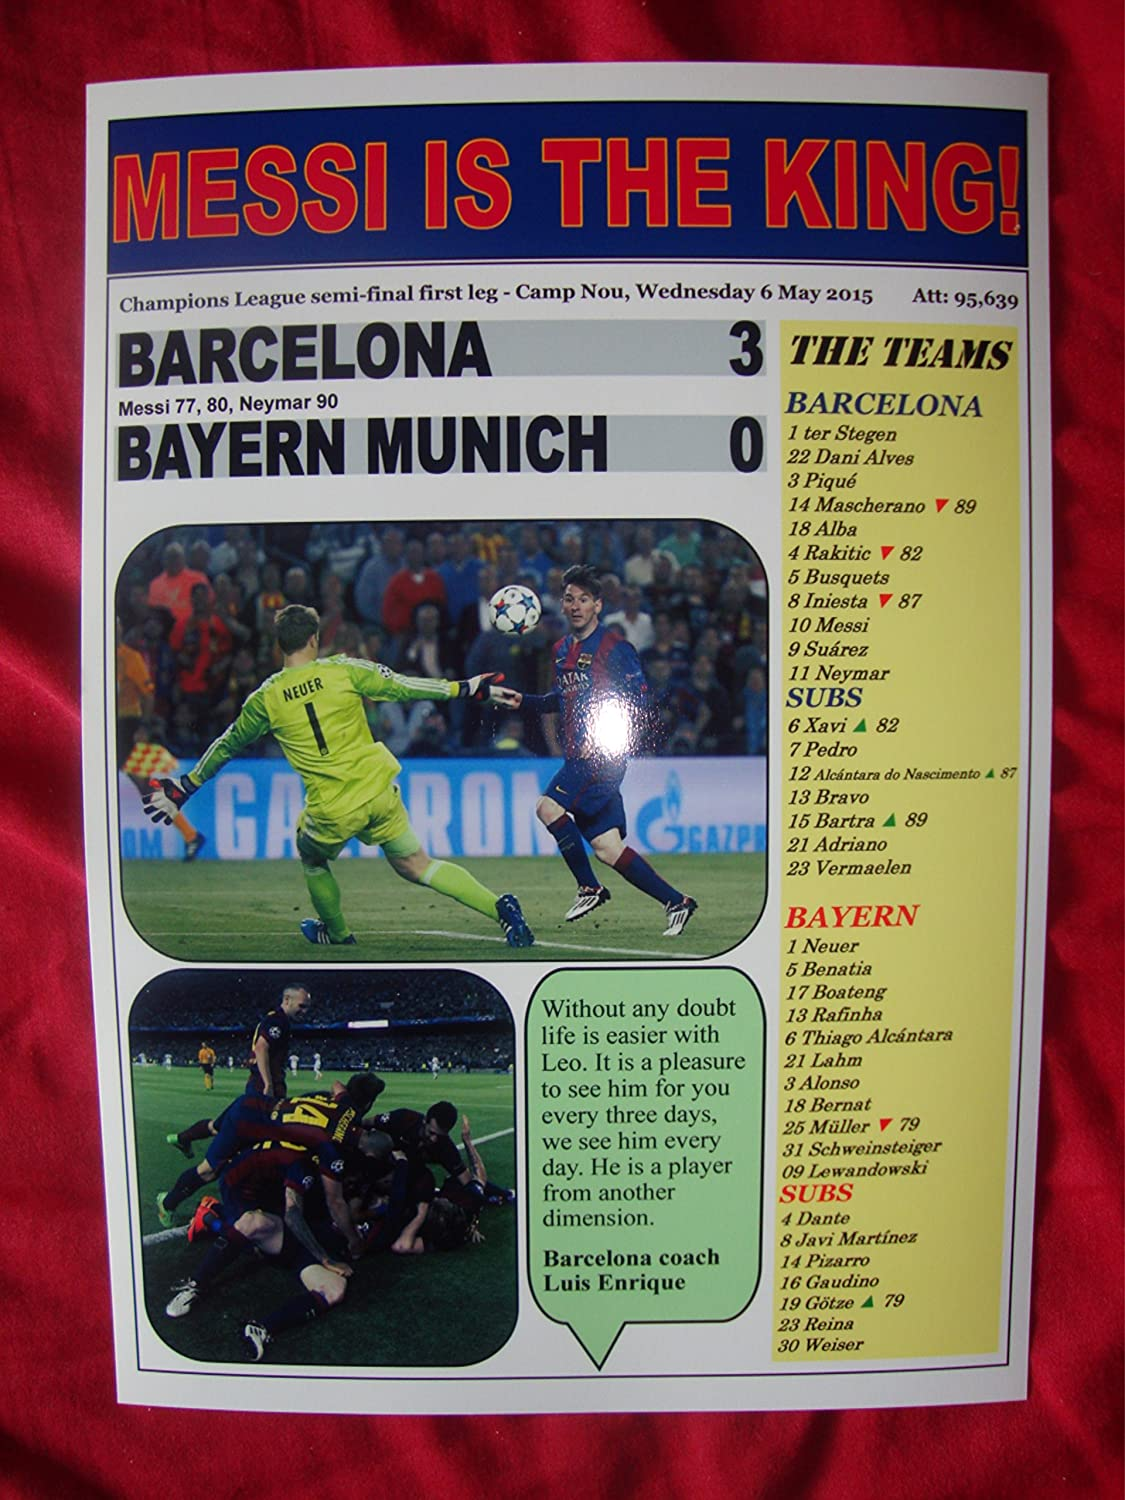 Amazon.com : Barcelona 3 Bayern Munich 0 - 2015 Champions League semi-final - souvenir print : Sports & Outdoors